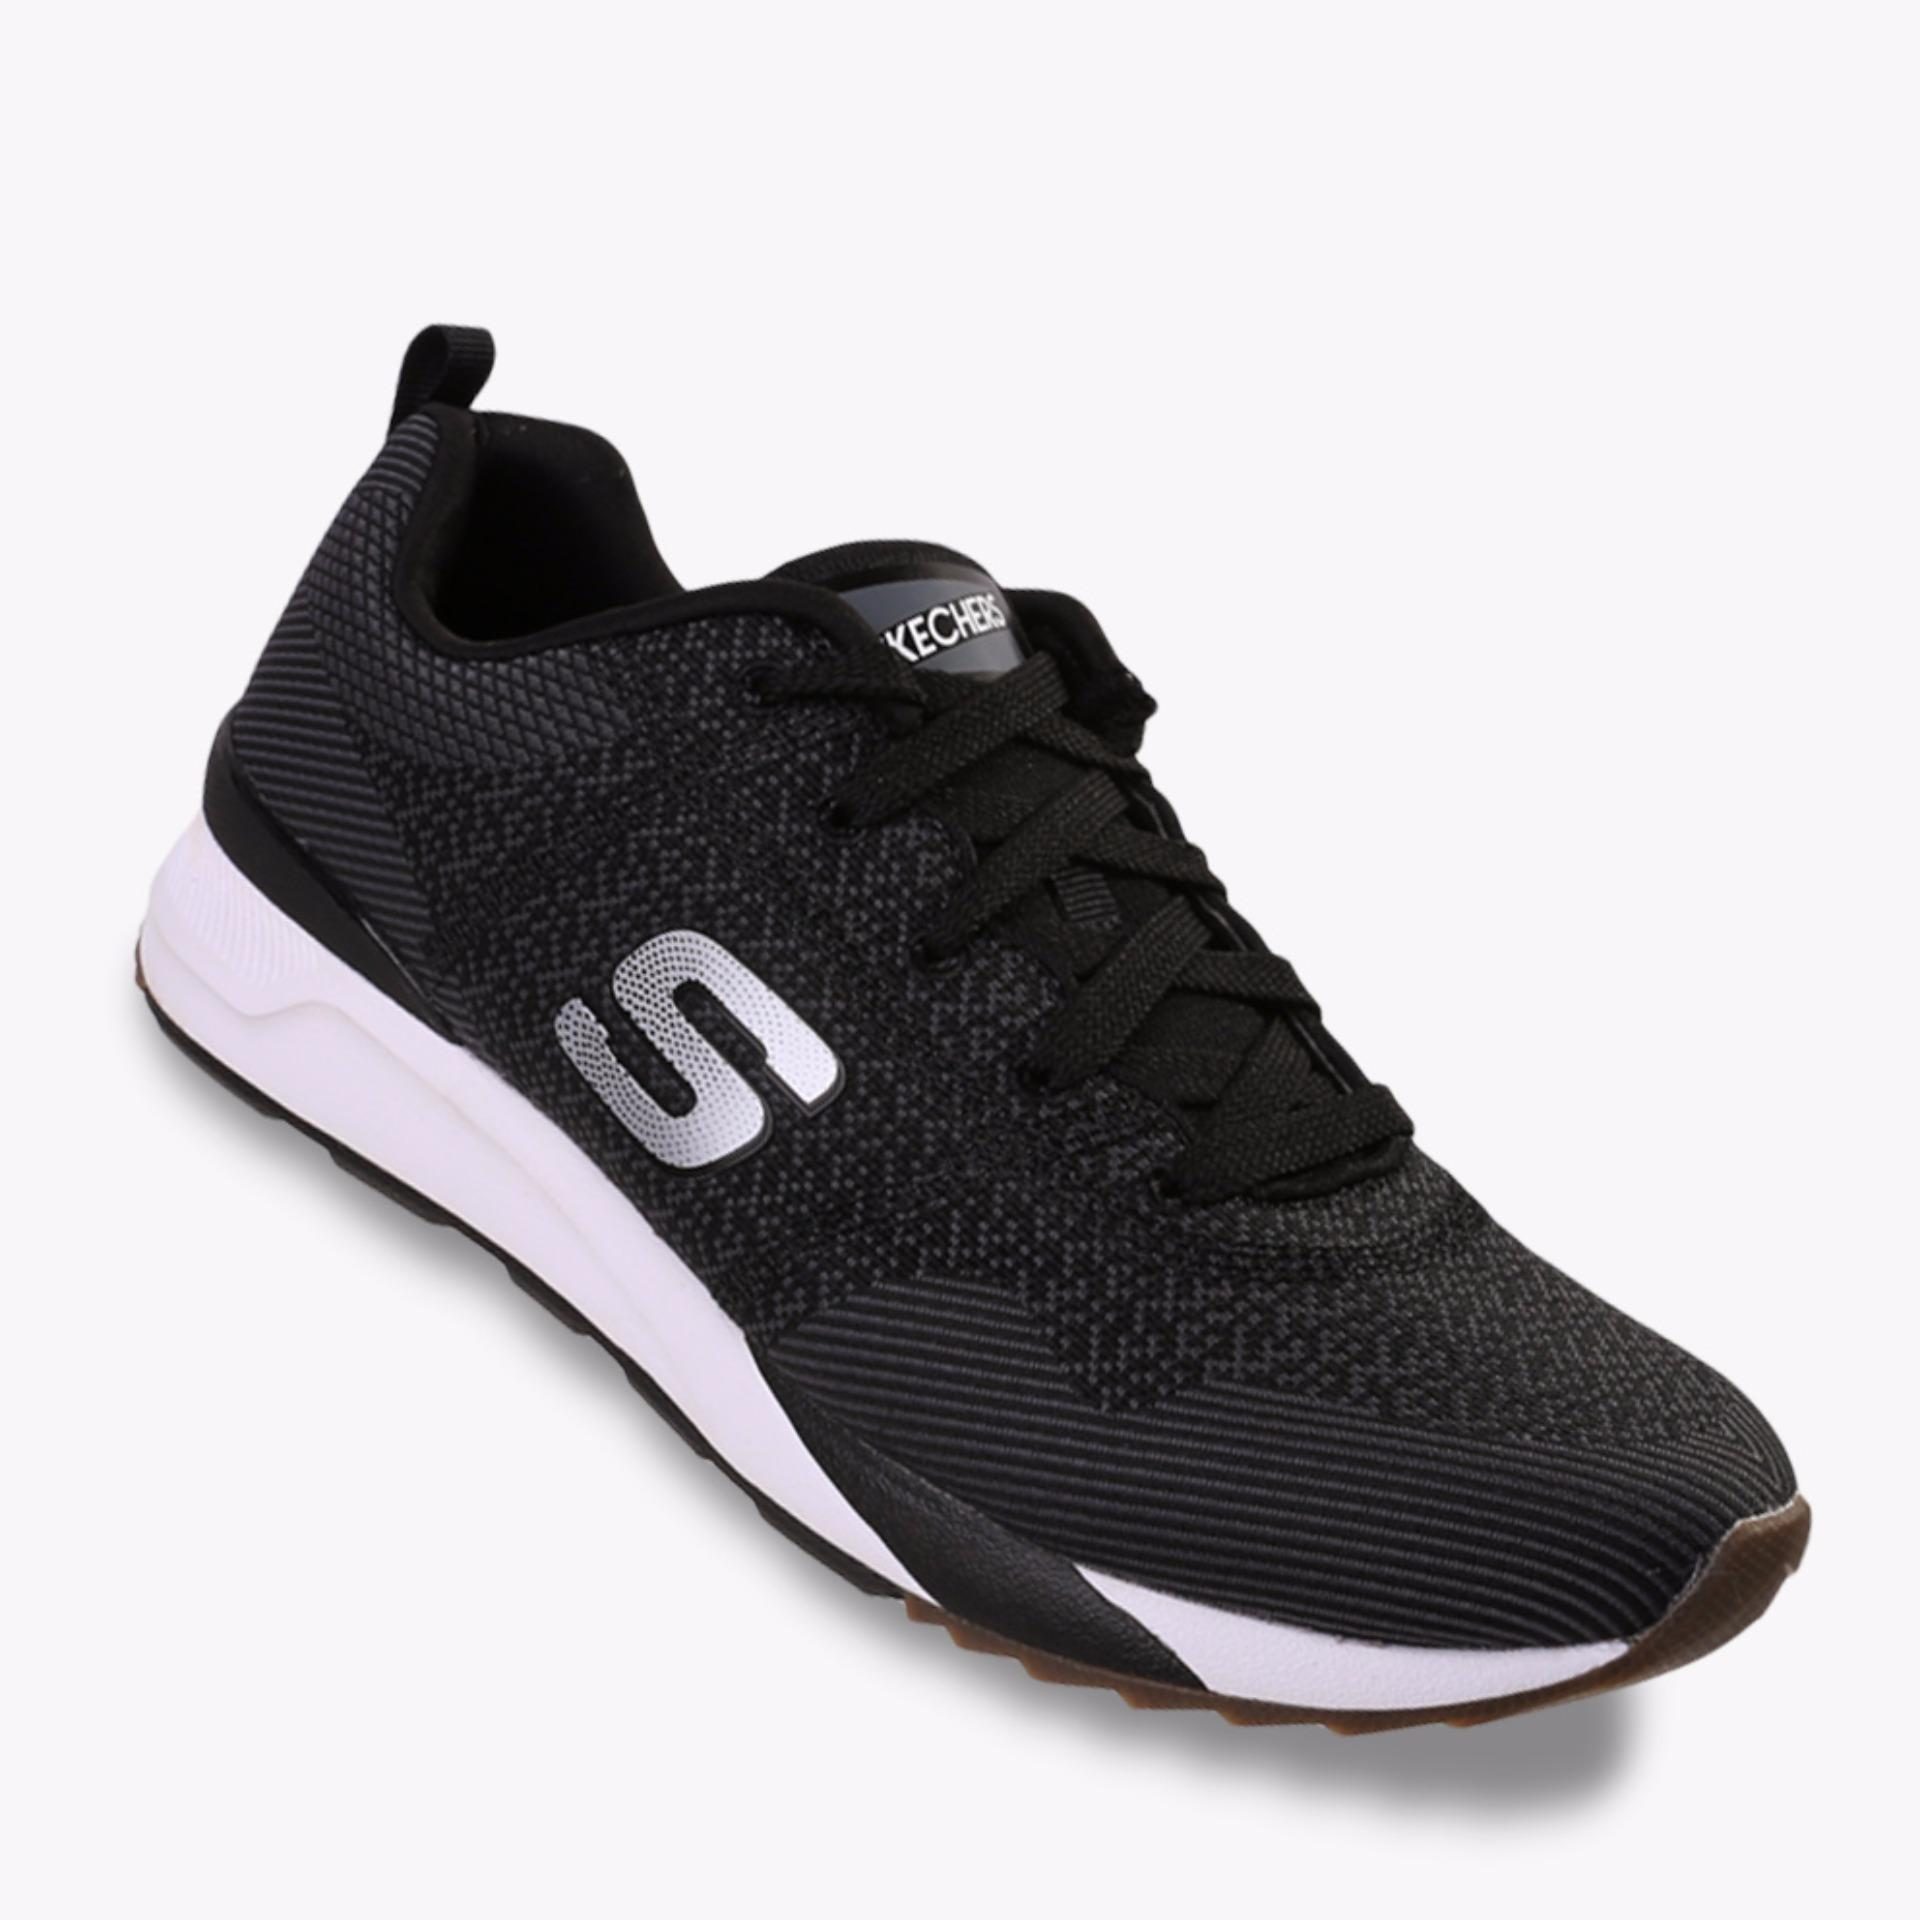 Toko Skechers Og 90 Cozine Men S Sneakers Shoes Hitam Termurah Indonesia